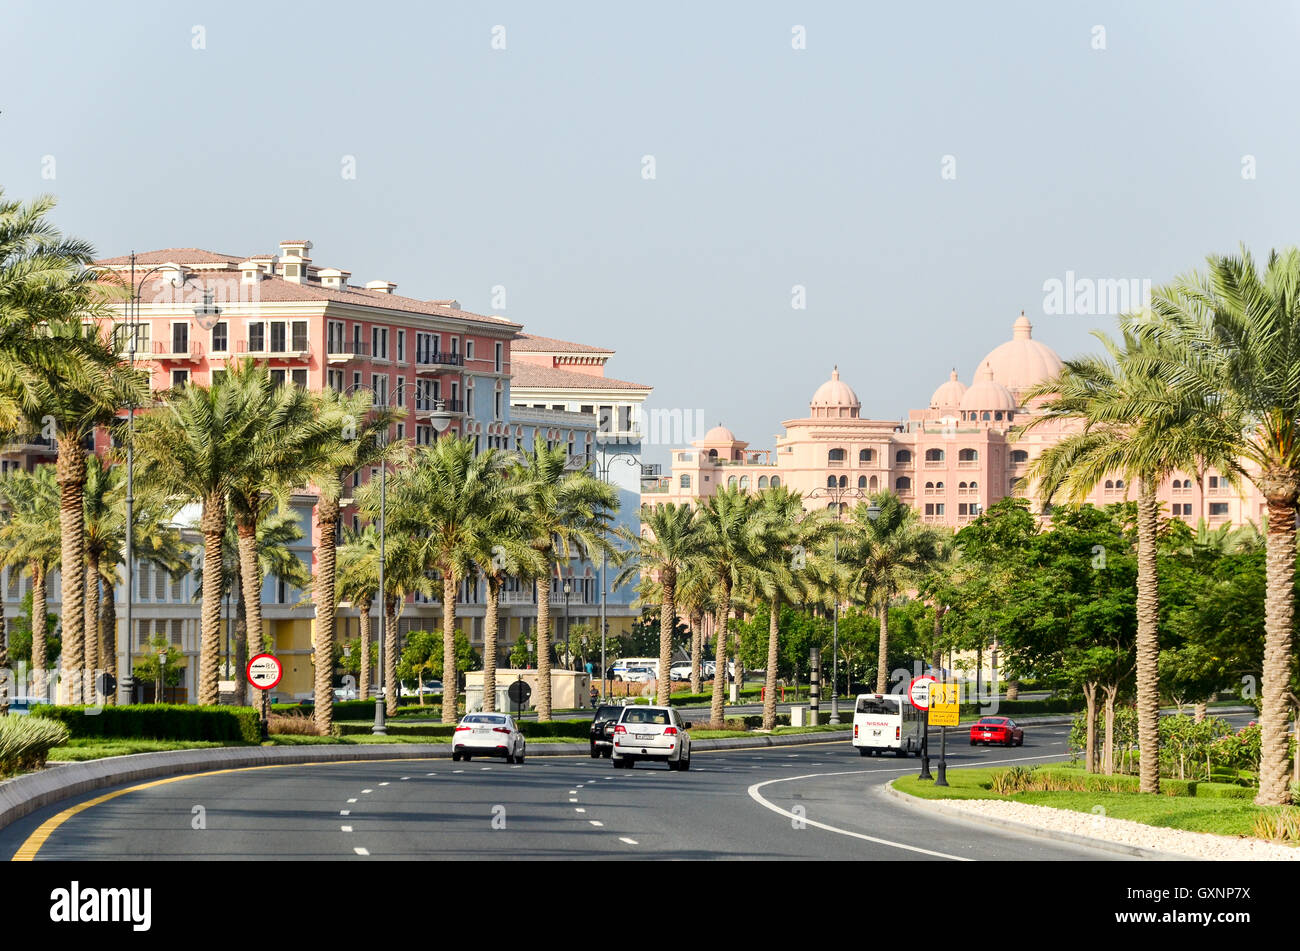 New roads and highways in Qatar, Middle East - Stock Image